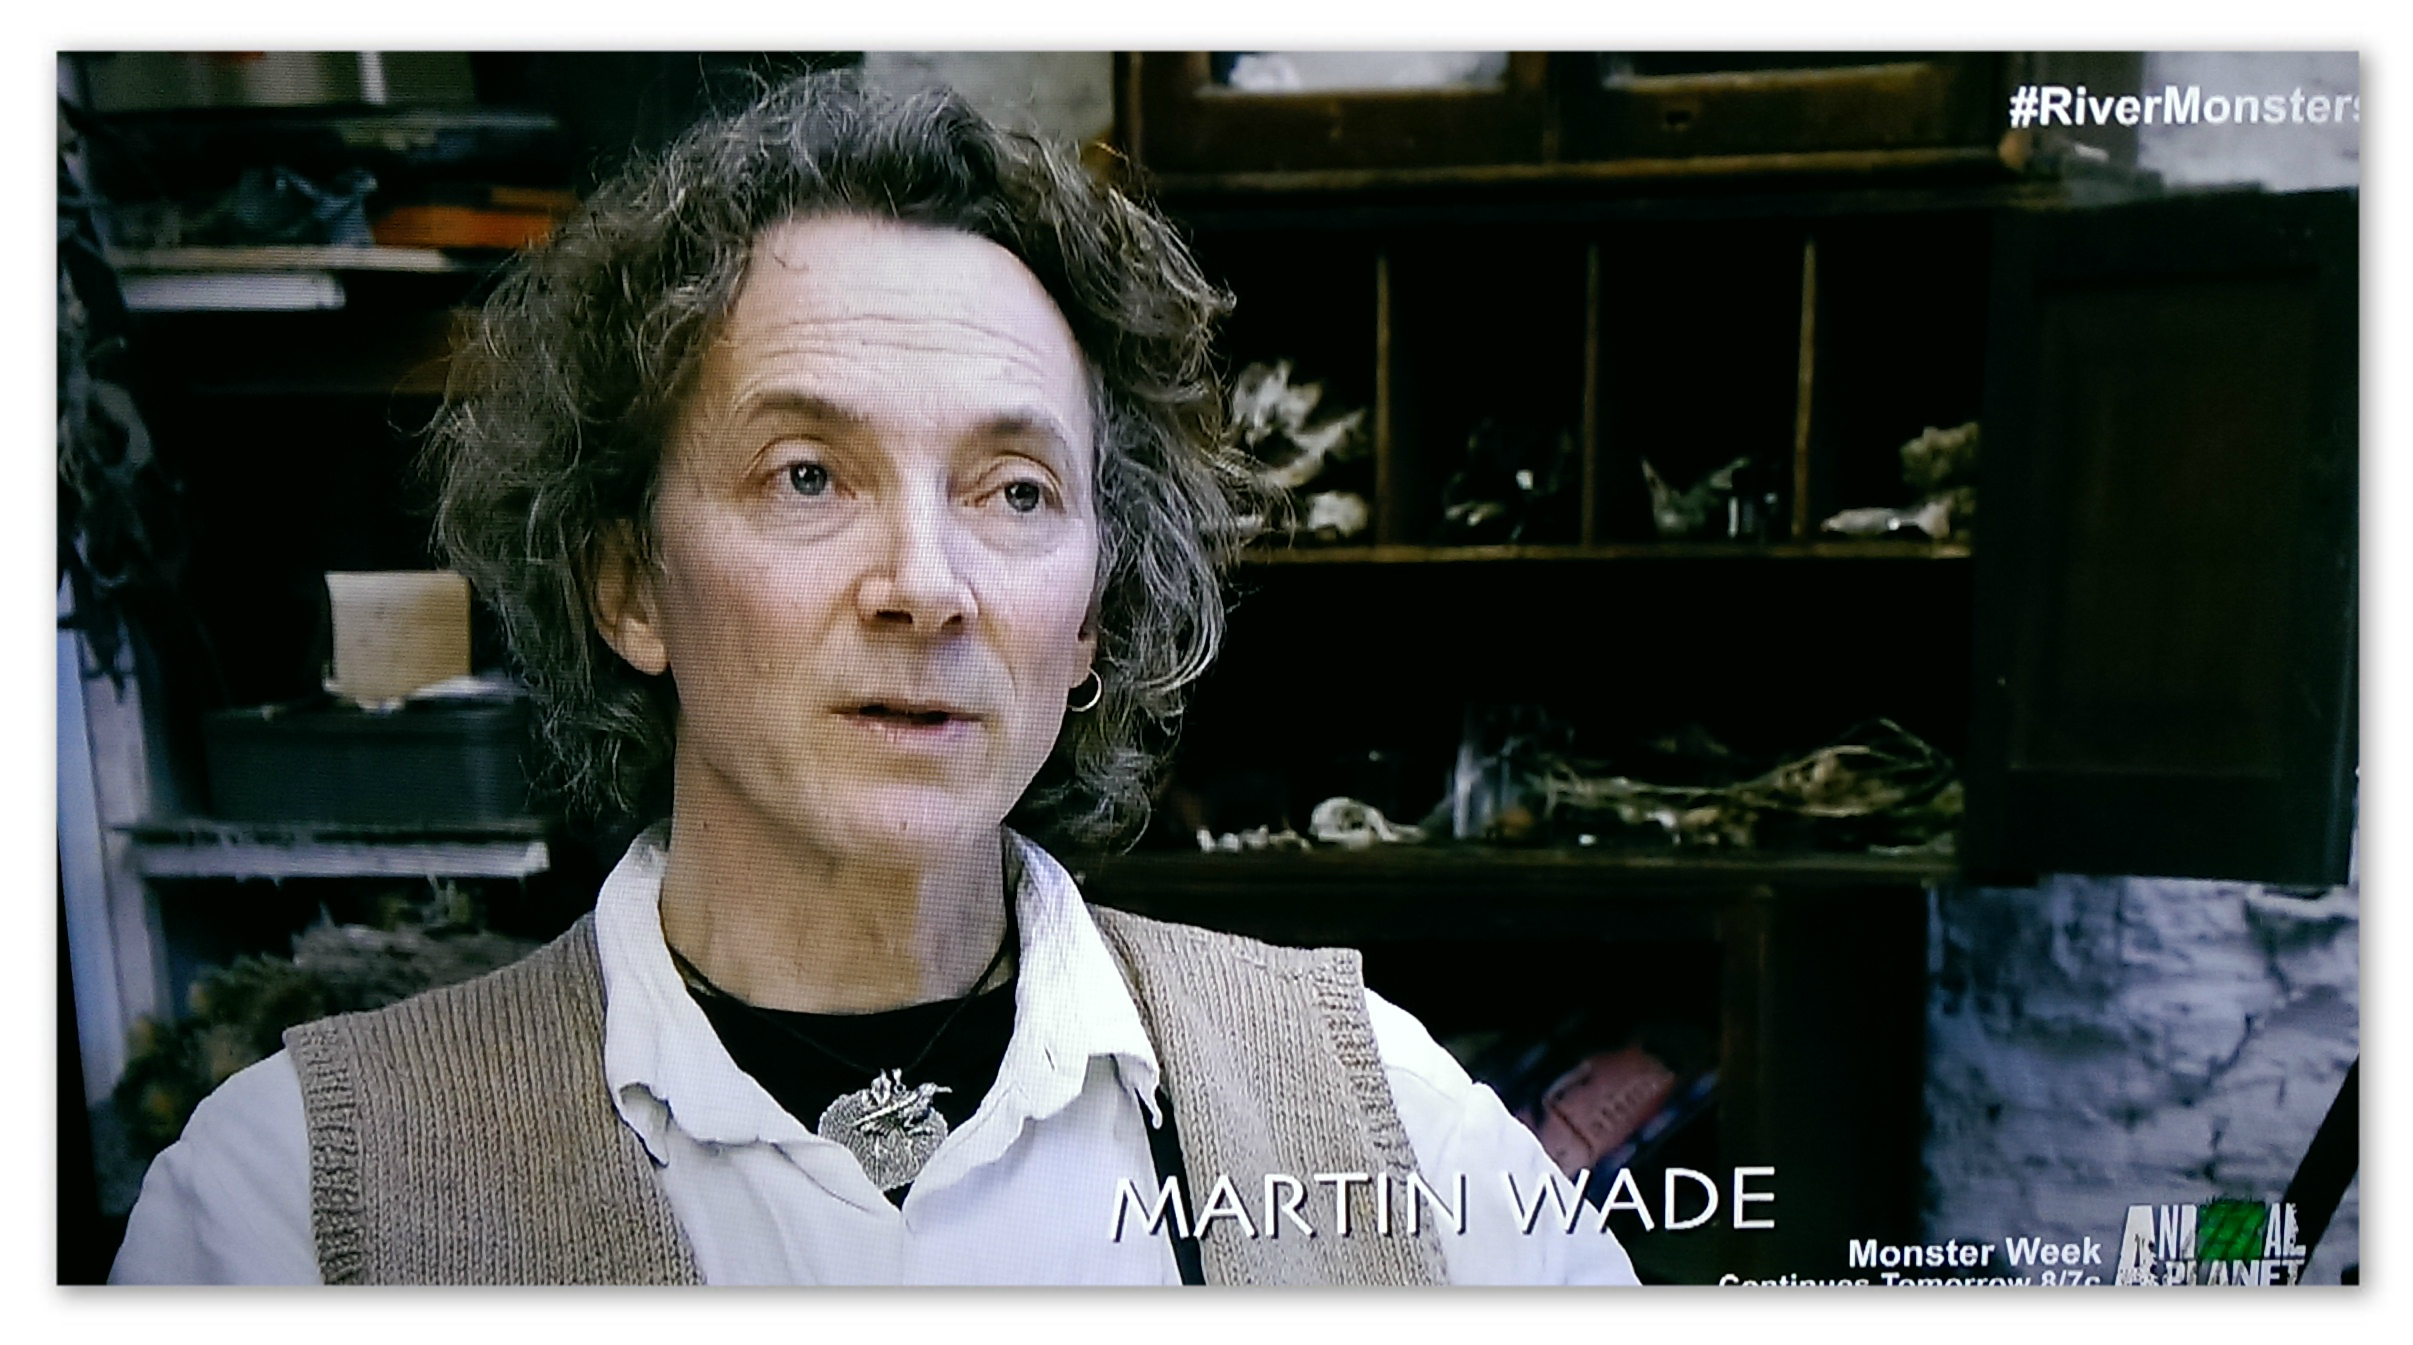 Image of Jeremy Wade's brother Martin Wade